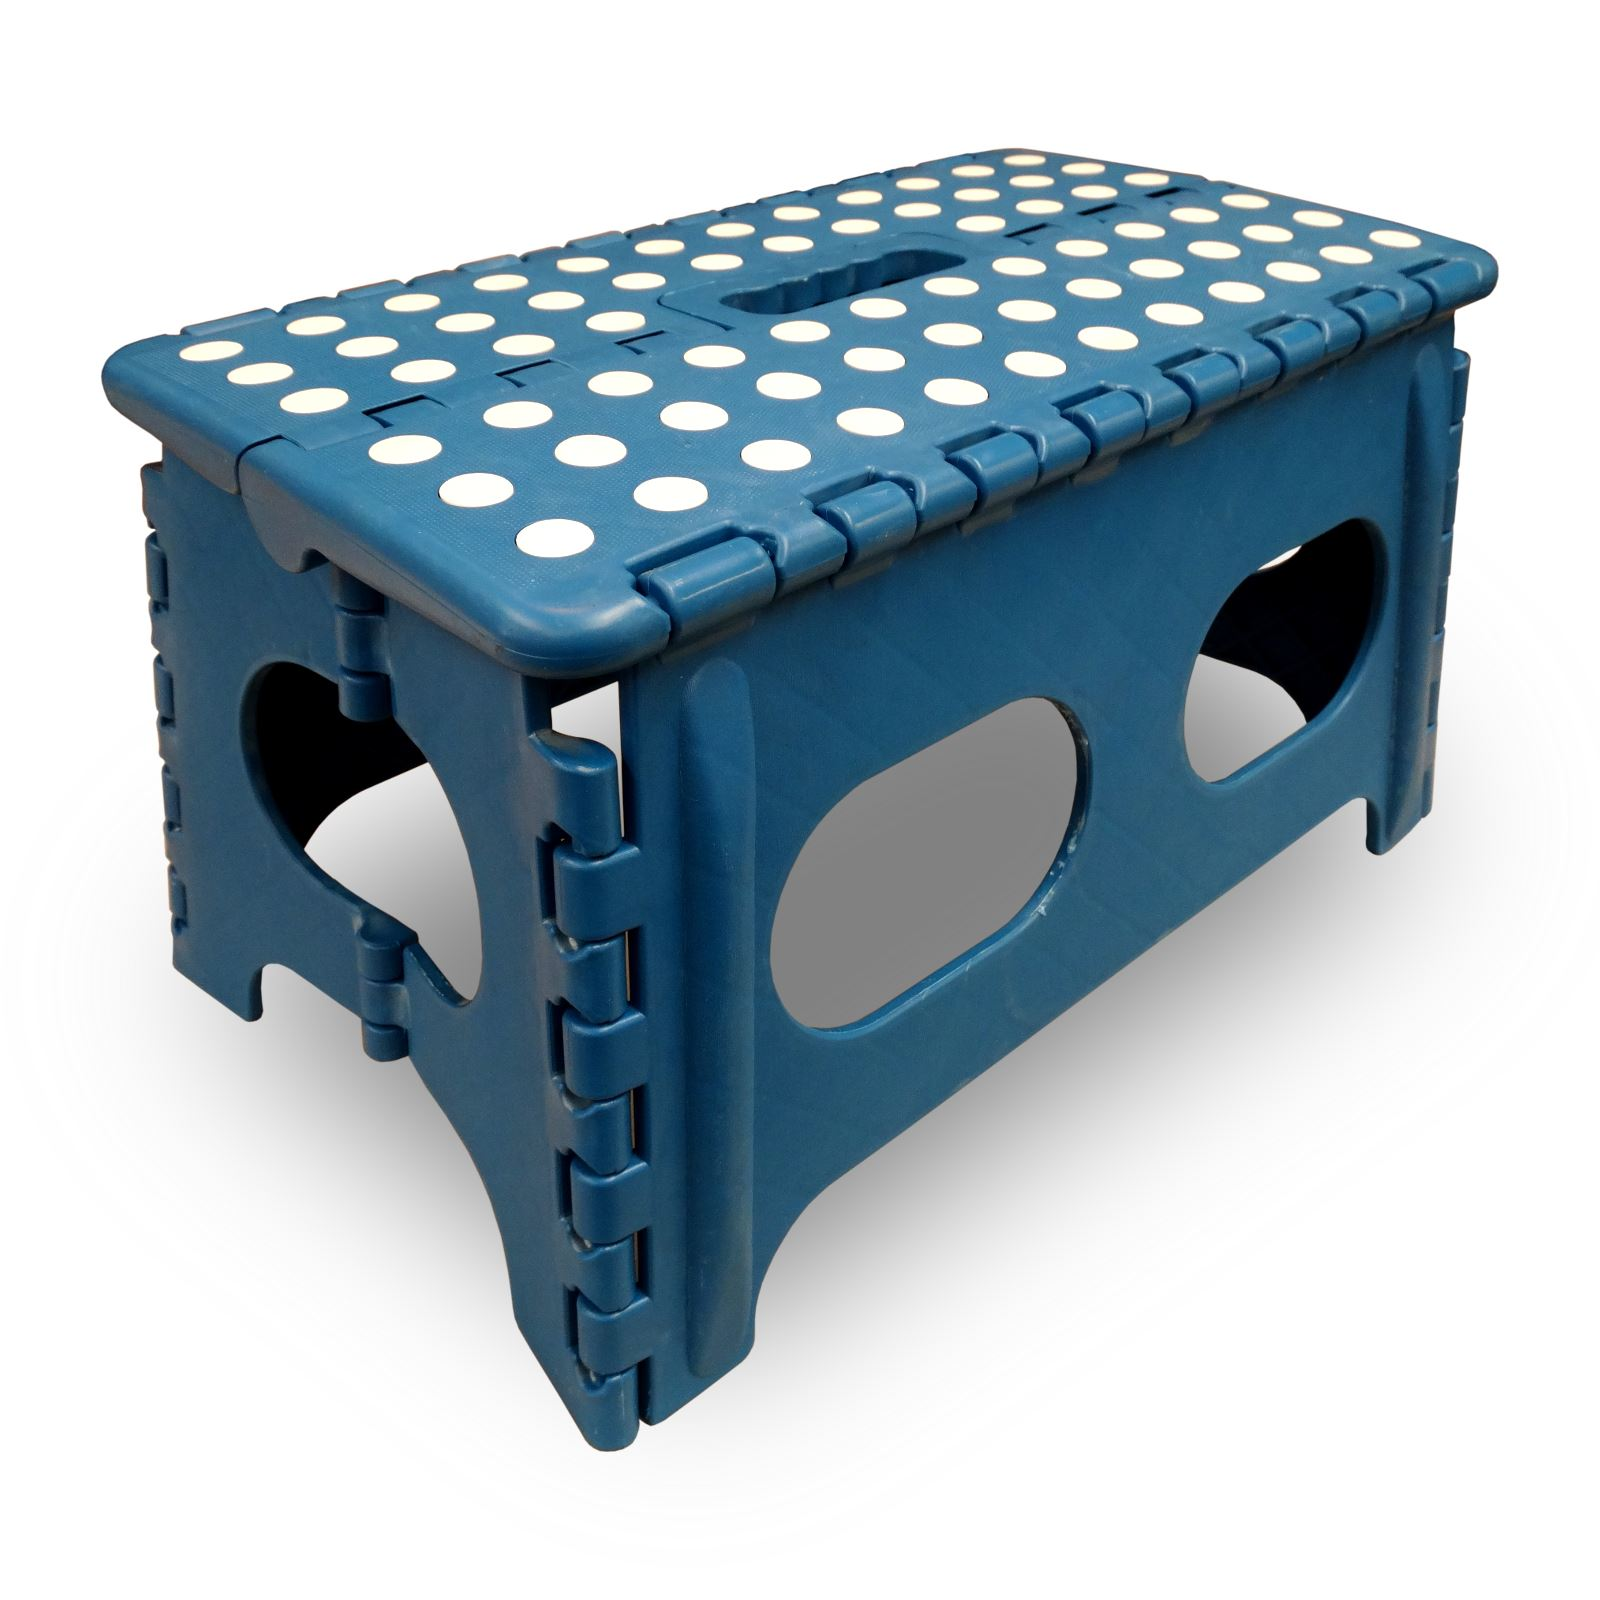 Extra Wide Multi Purpose Folding Step Stool Foldable Easy